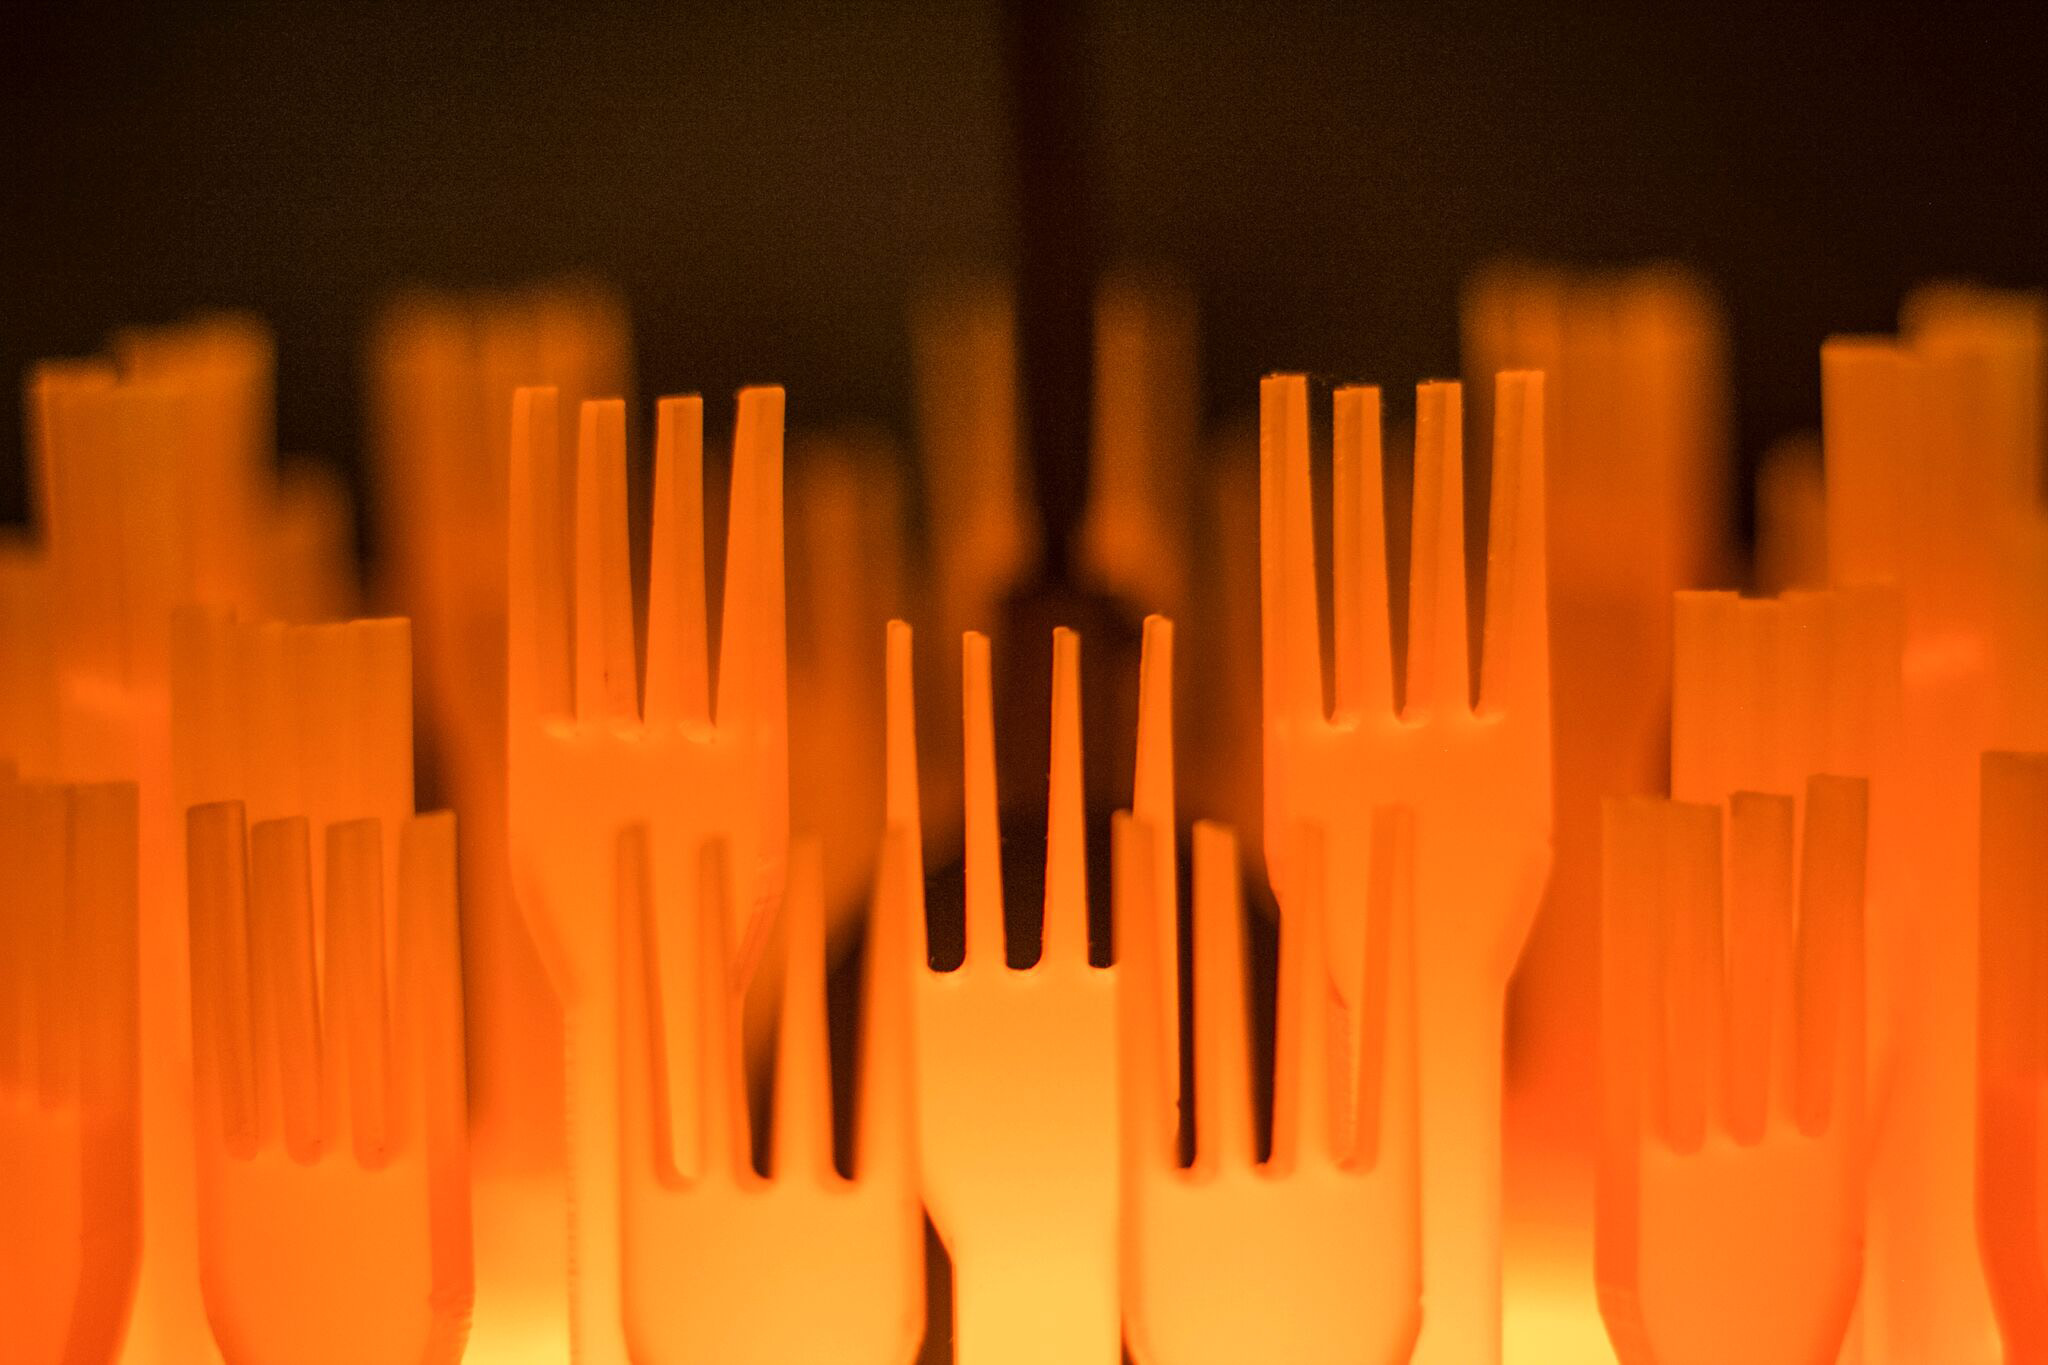 Forks Over Knives luminaire in orange acrylic